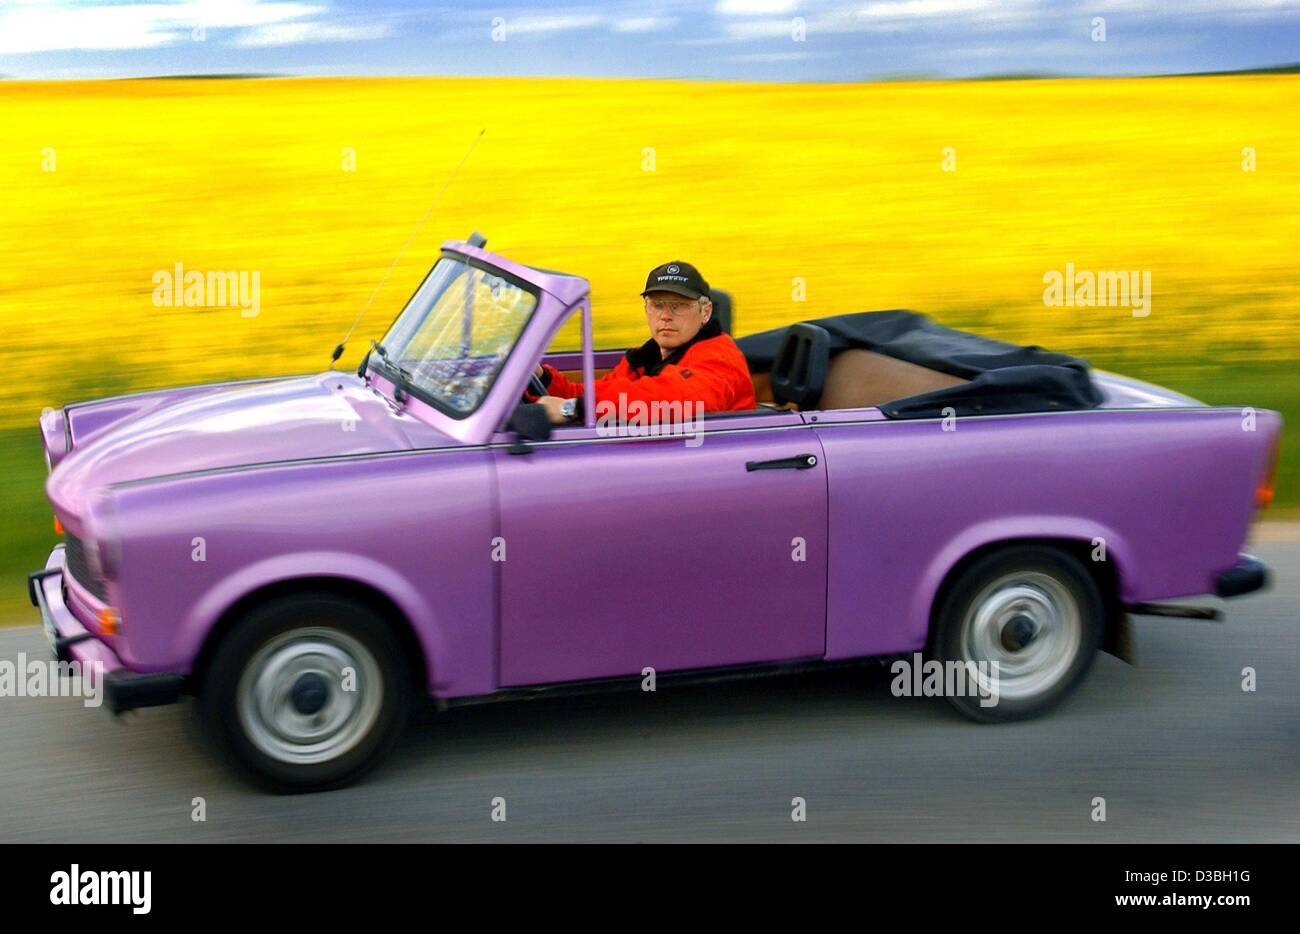 Dpa Bernd Quandt Owner Of A Car Rental Agency Drives A Lilac